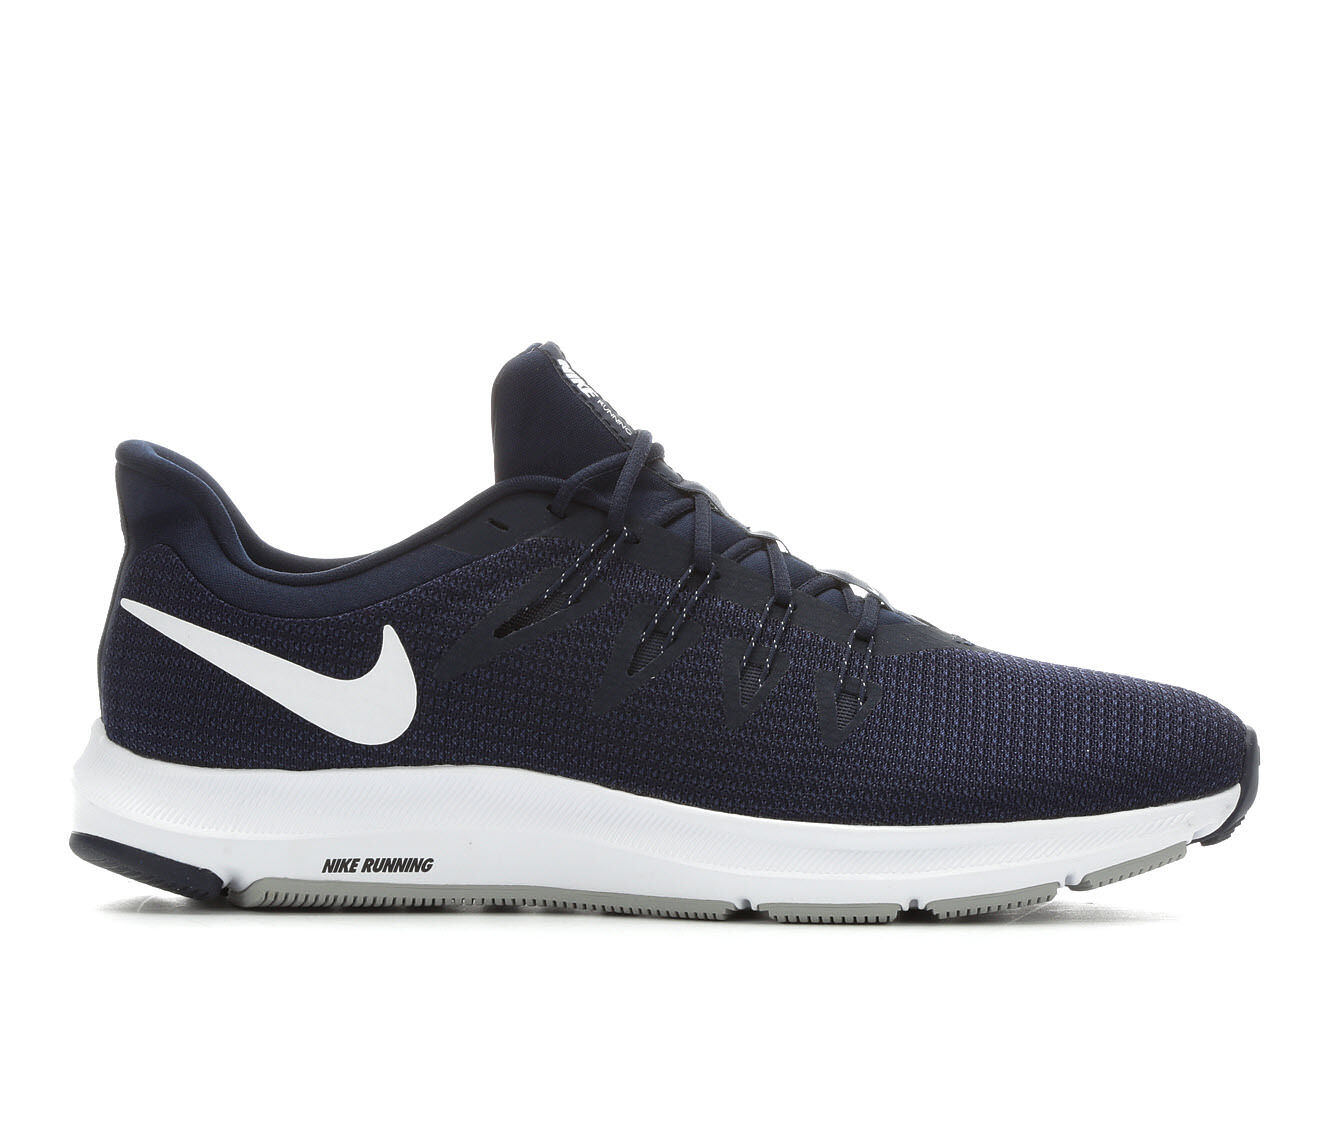 new style Men's Nike Quest Running Shoes Blu/Wh/Gry